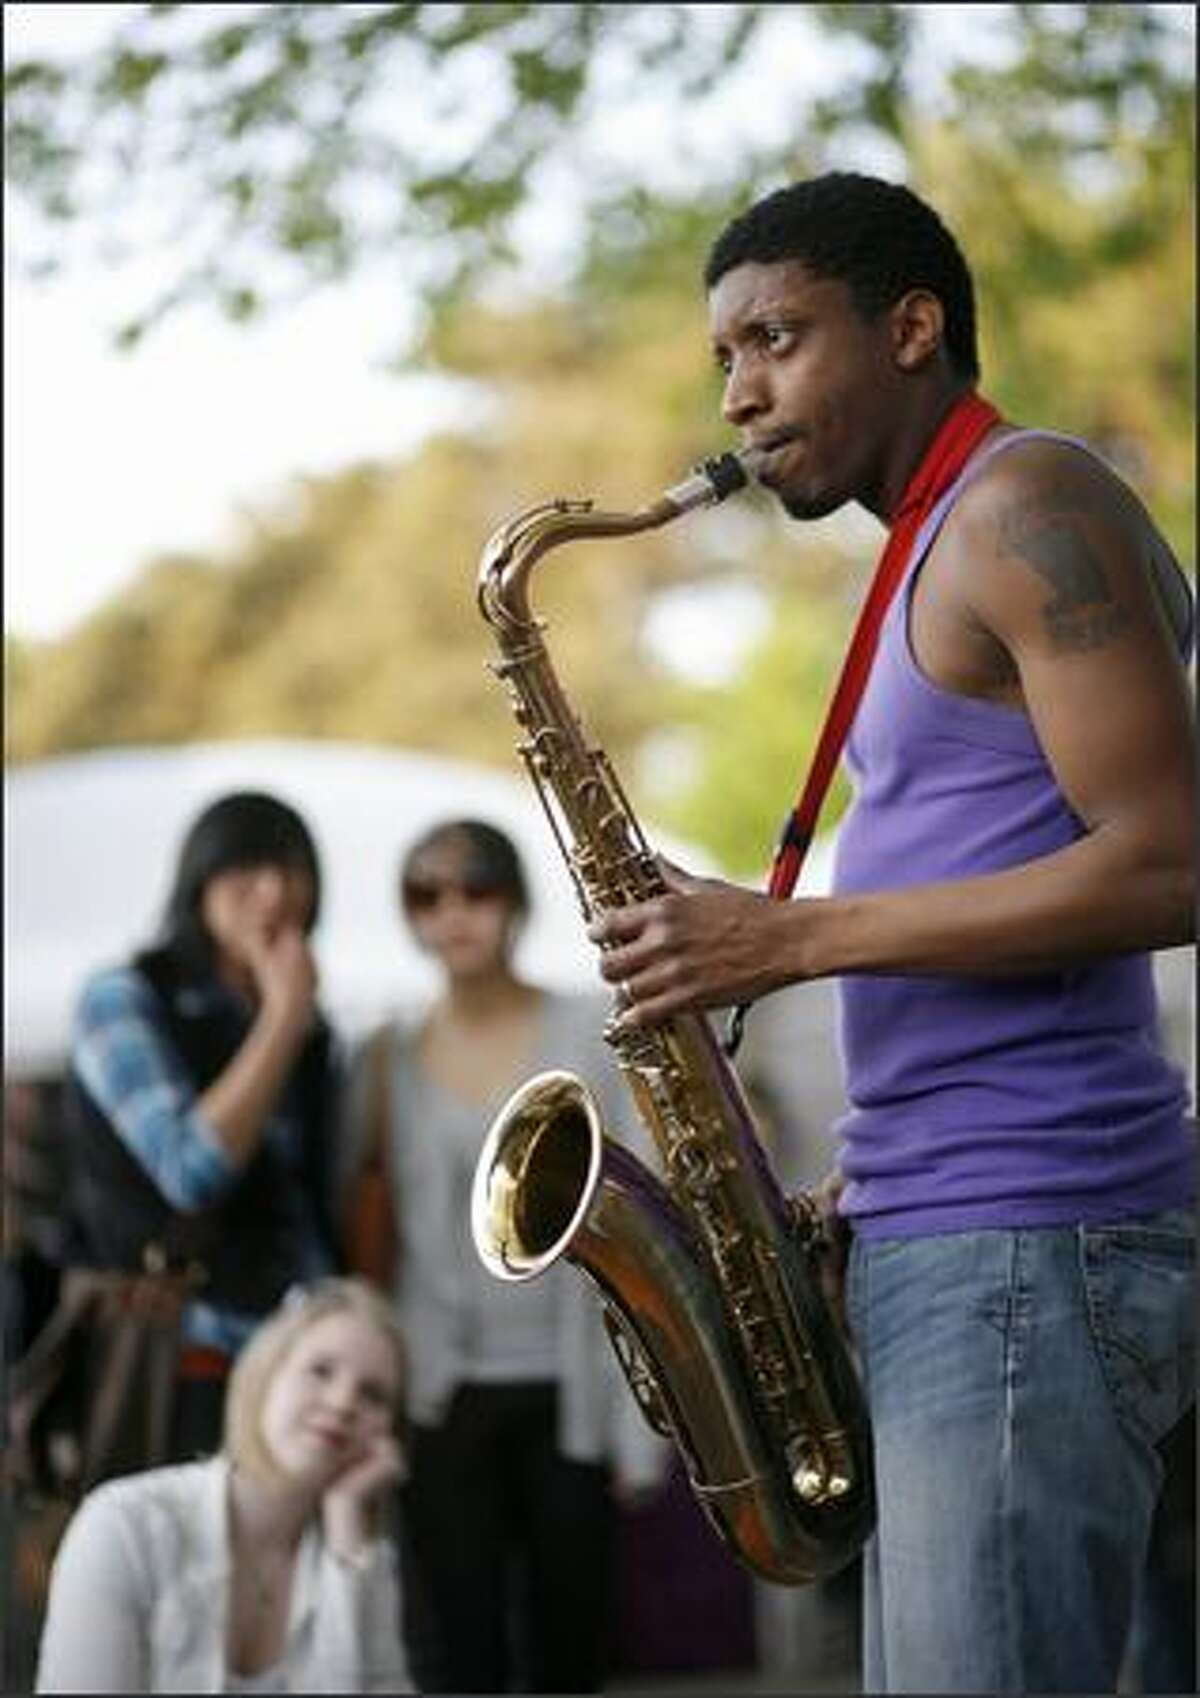 Javon Miller from Bellingham plays the sax with his musical group.